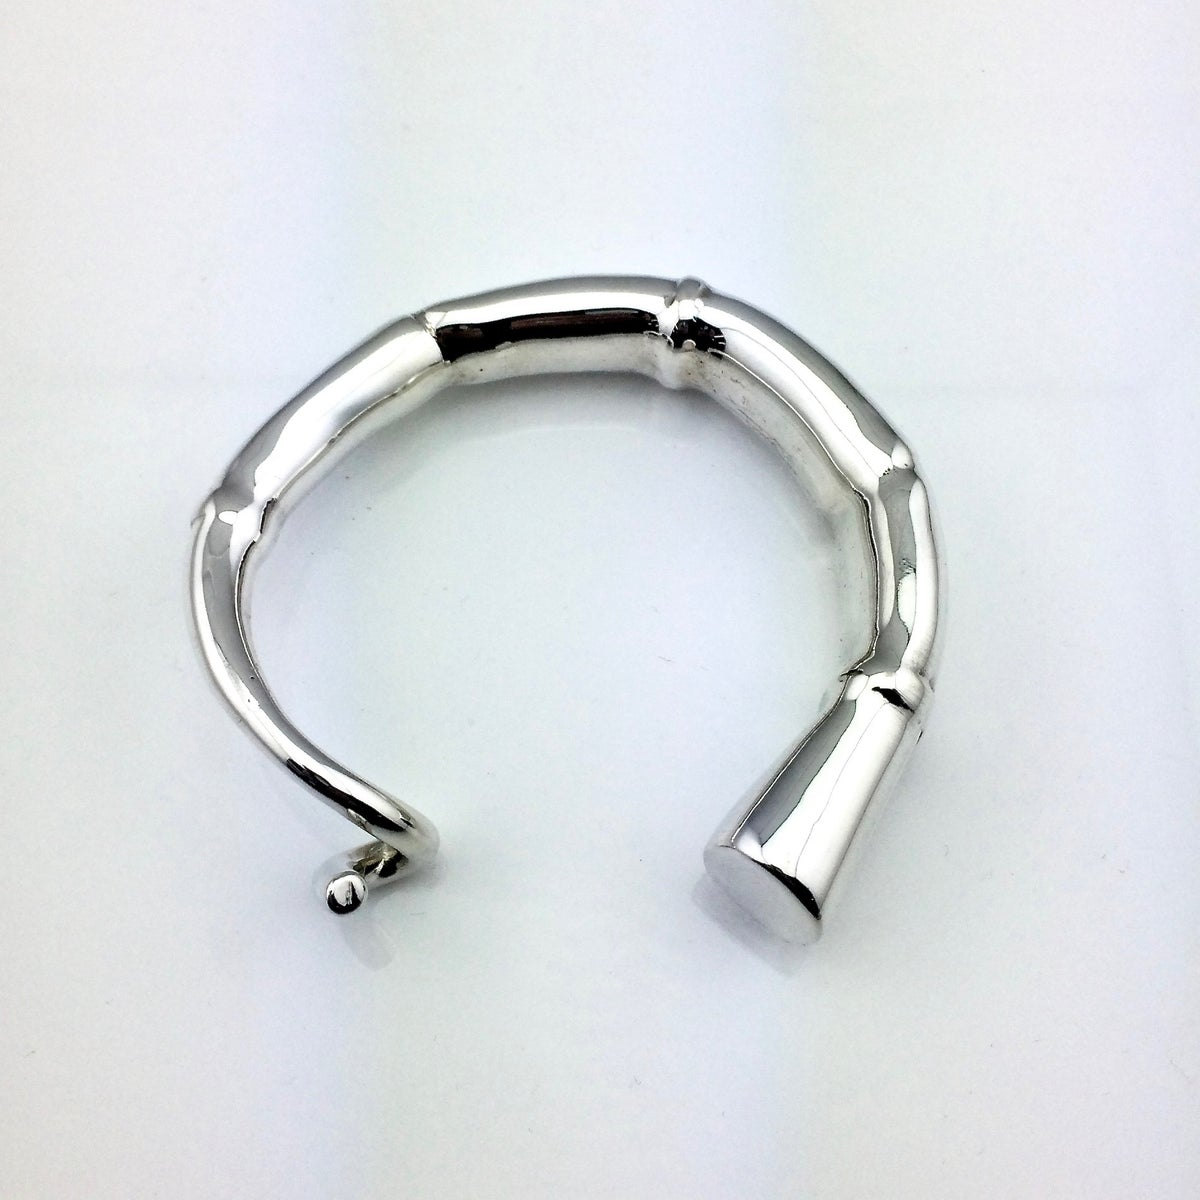 Image of SILVER TENDRIL CUFF BRACELET 01